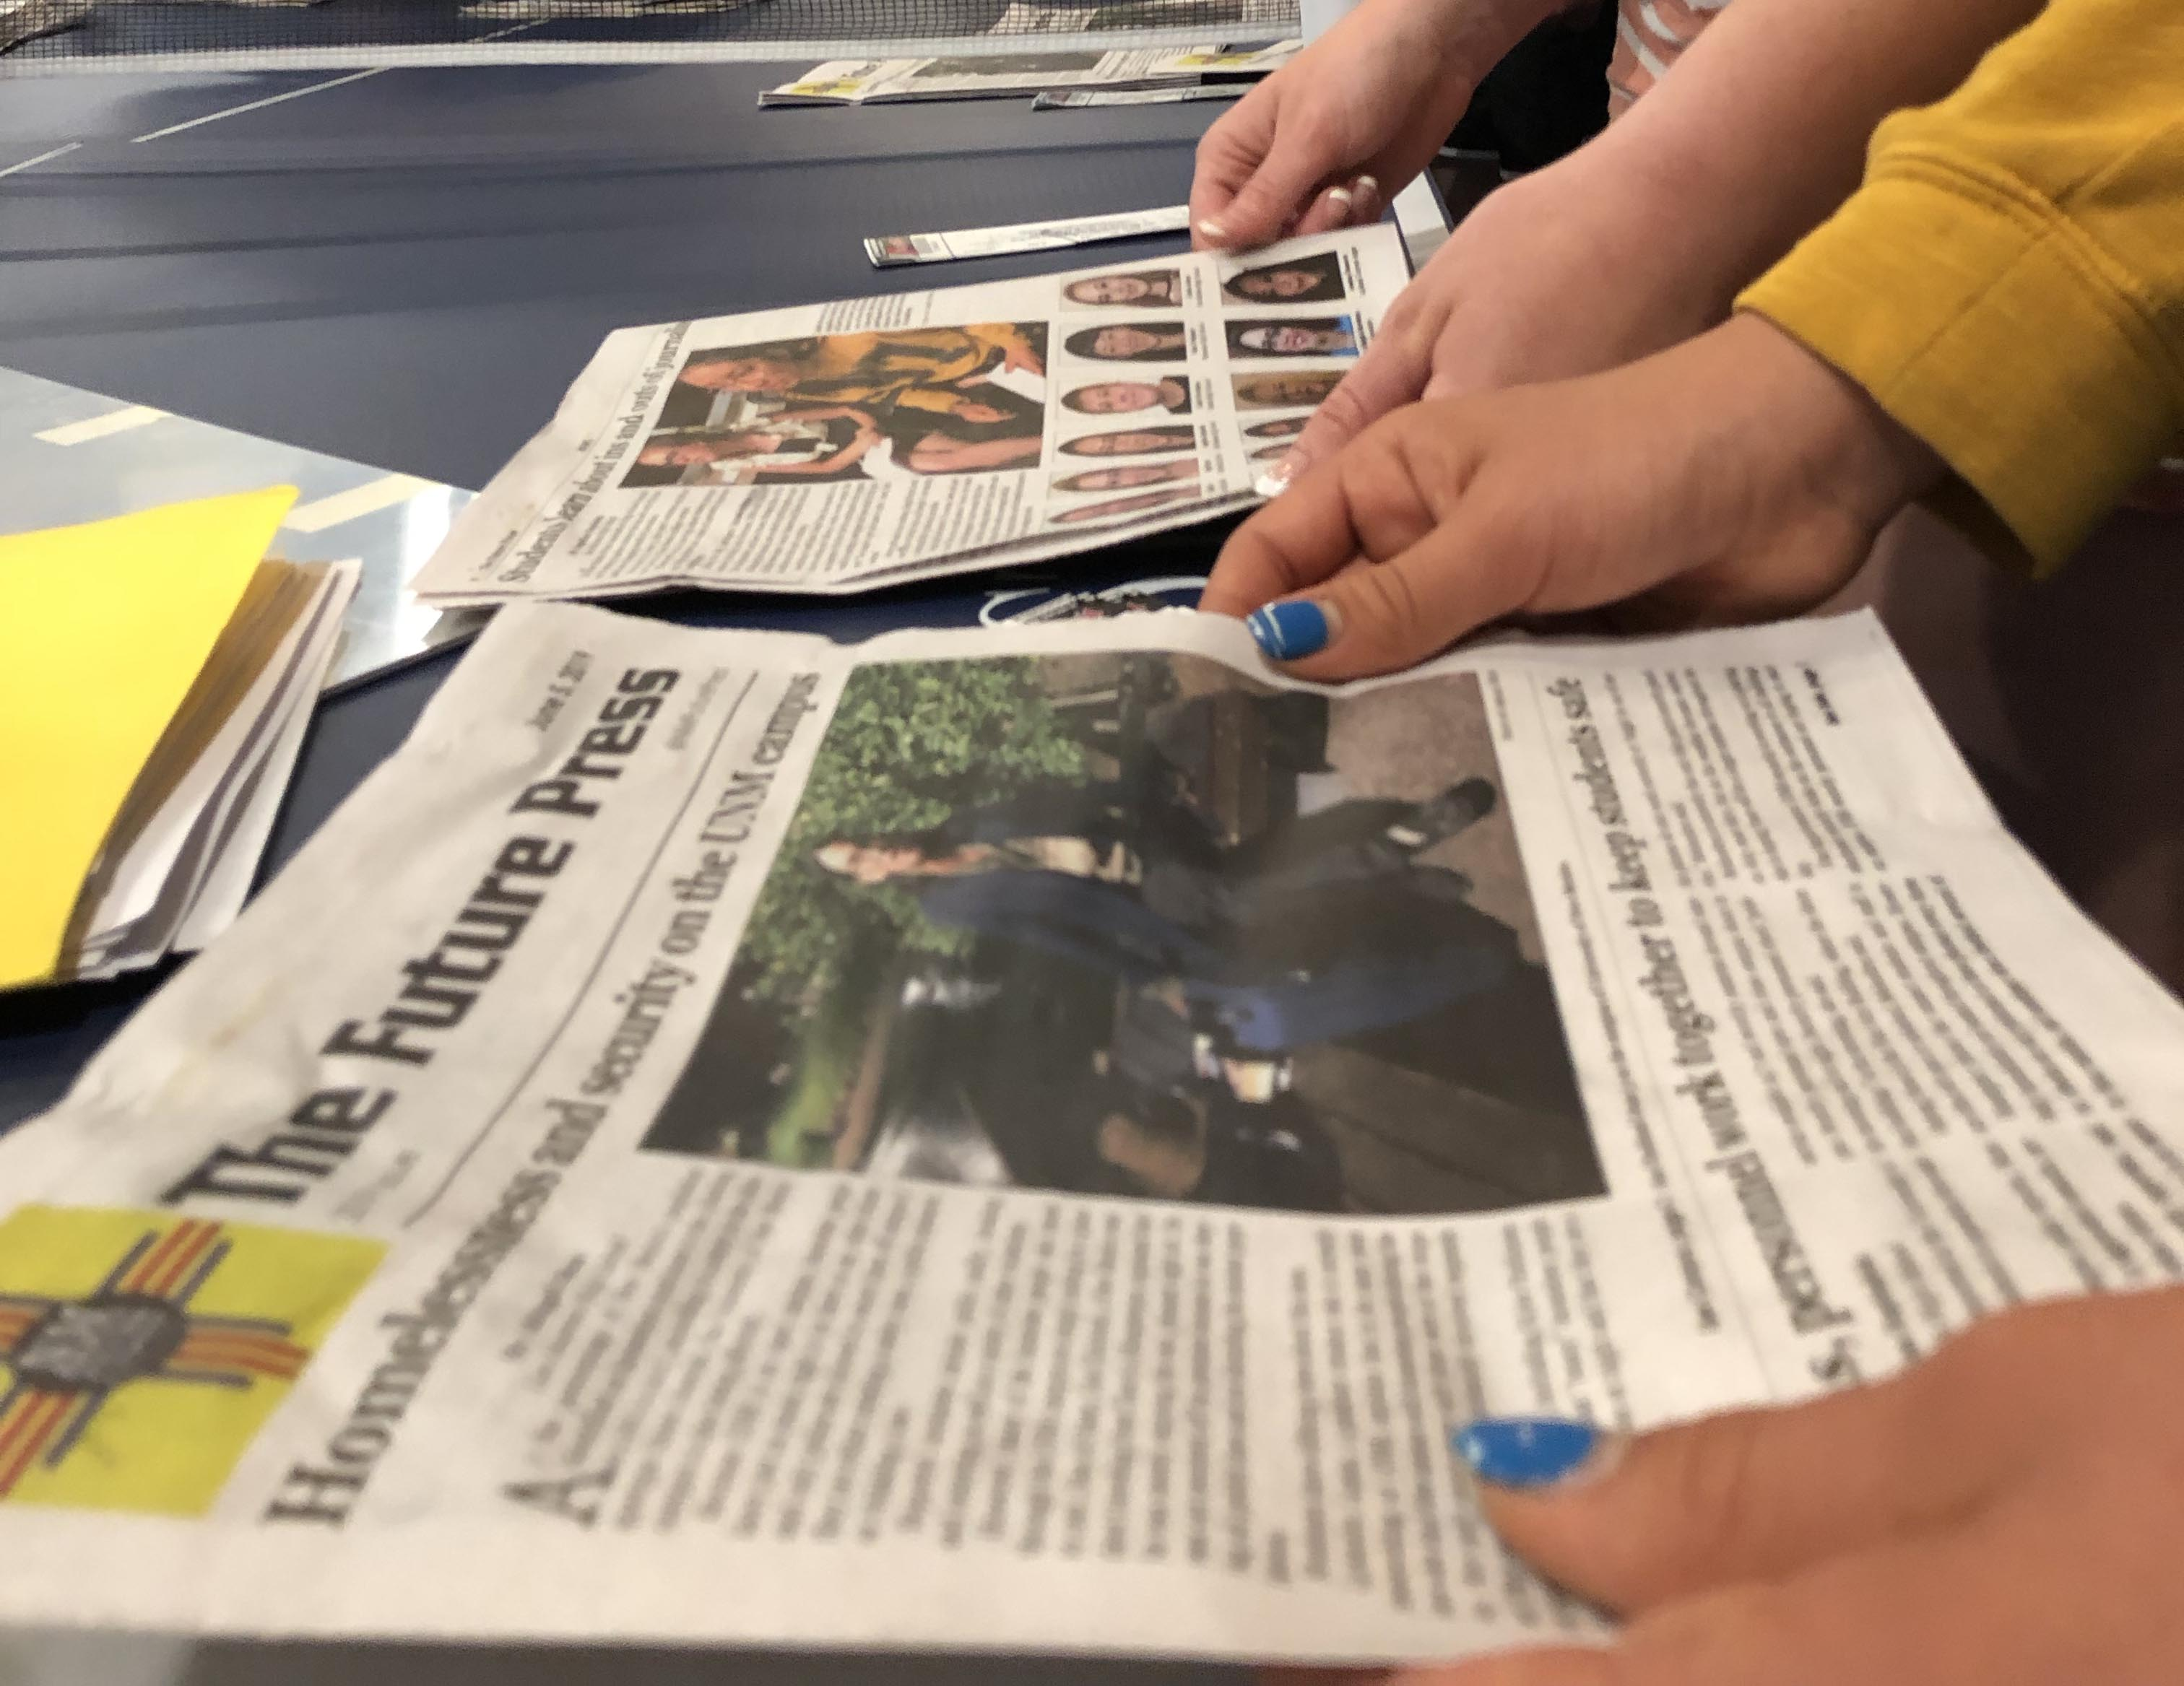 Reflections on the future of journalism & newspapers